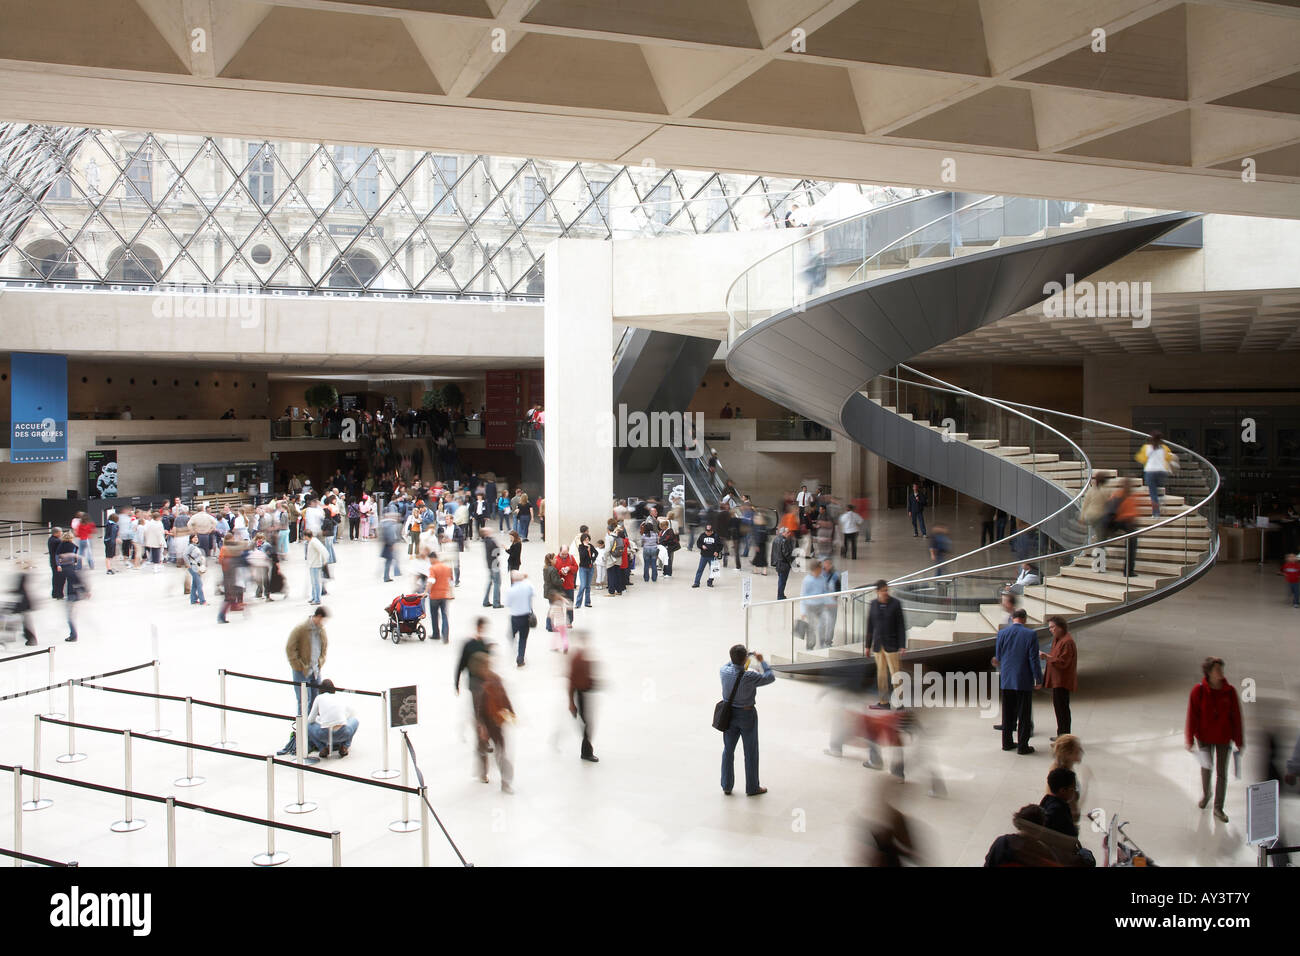 The stairway within the Louvre - Stock Image